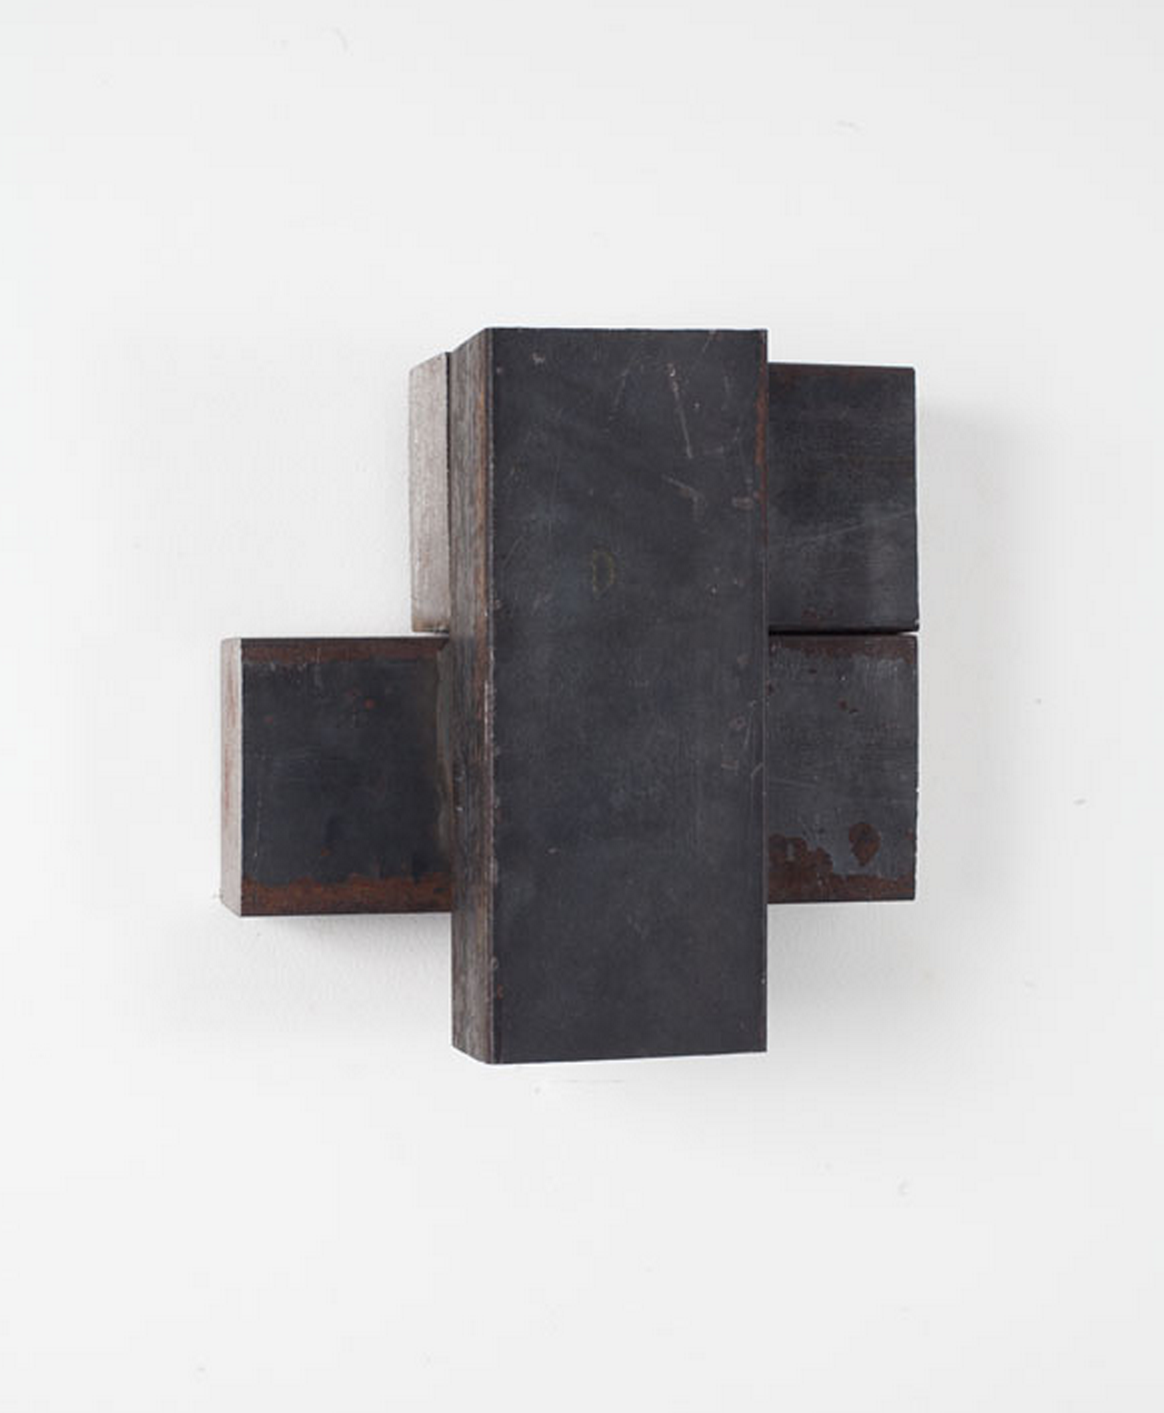 Untitled (from the Cherrytree Split Series), 2011 Cherry wood 11.5 x 11 x 6.5 inches (29.21 x 27.94 x 16.51 cm) Richard Nonas Untitled, 2012 Steel 8 x 9 x 4 inches (20.32 x 22.86 x 10.16 cm)